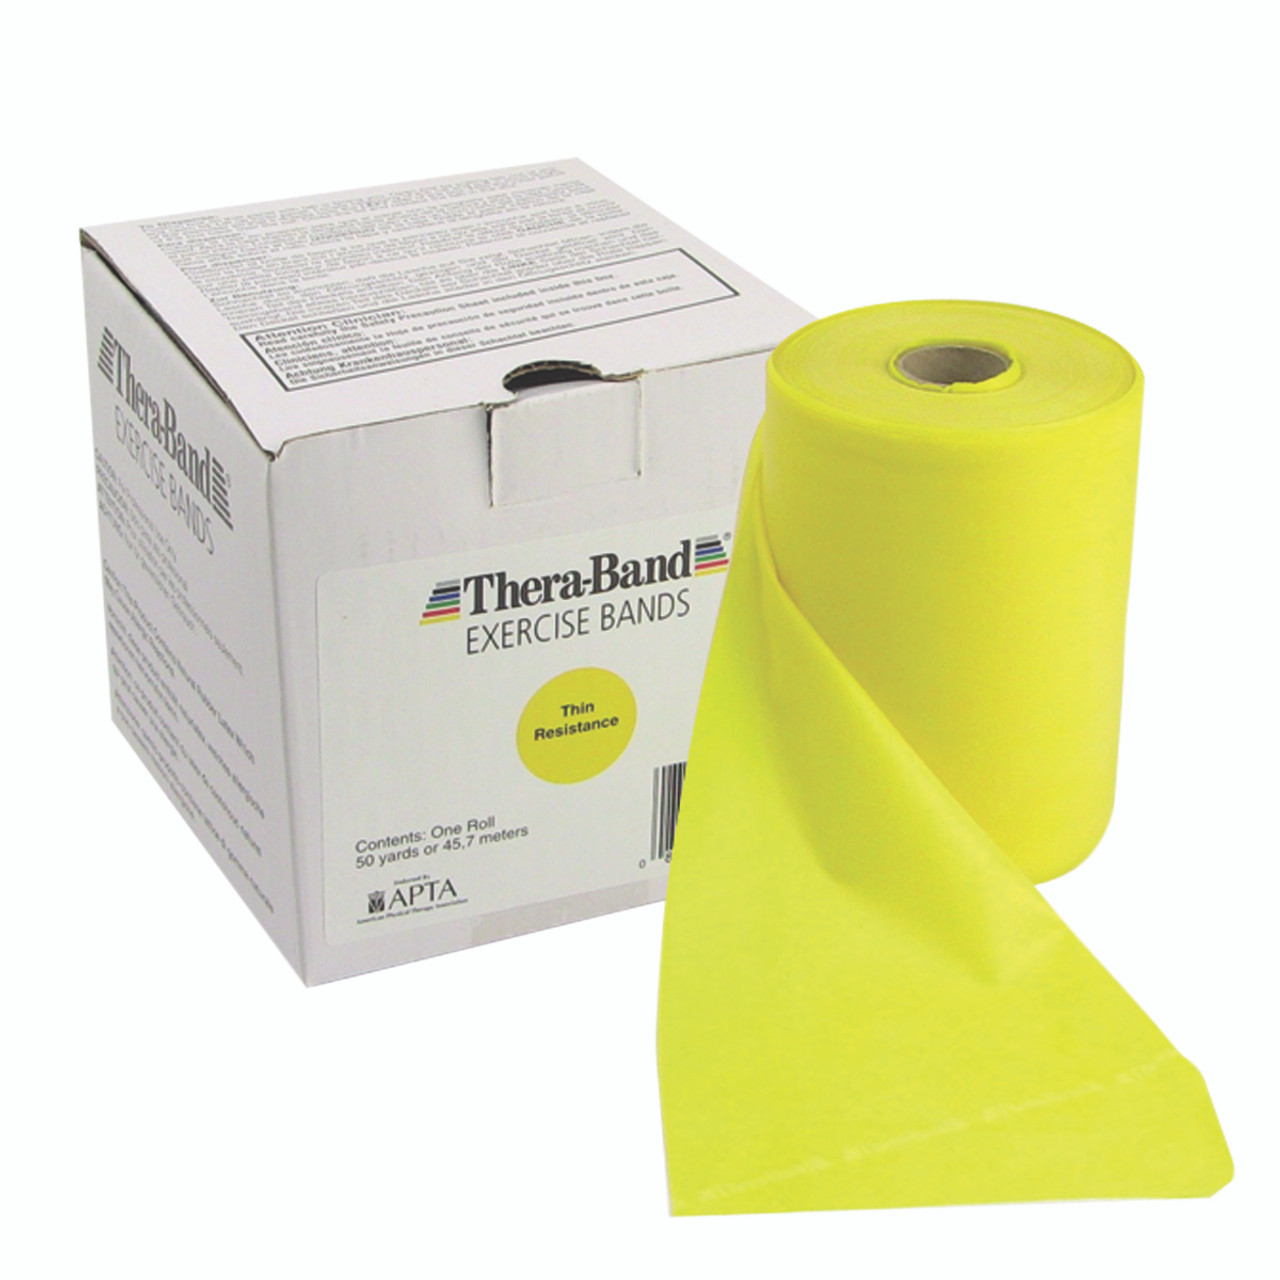 Thera-Band Exercise Resistance Band 50 Yard Roll Theraband 50yd